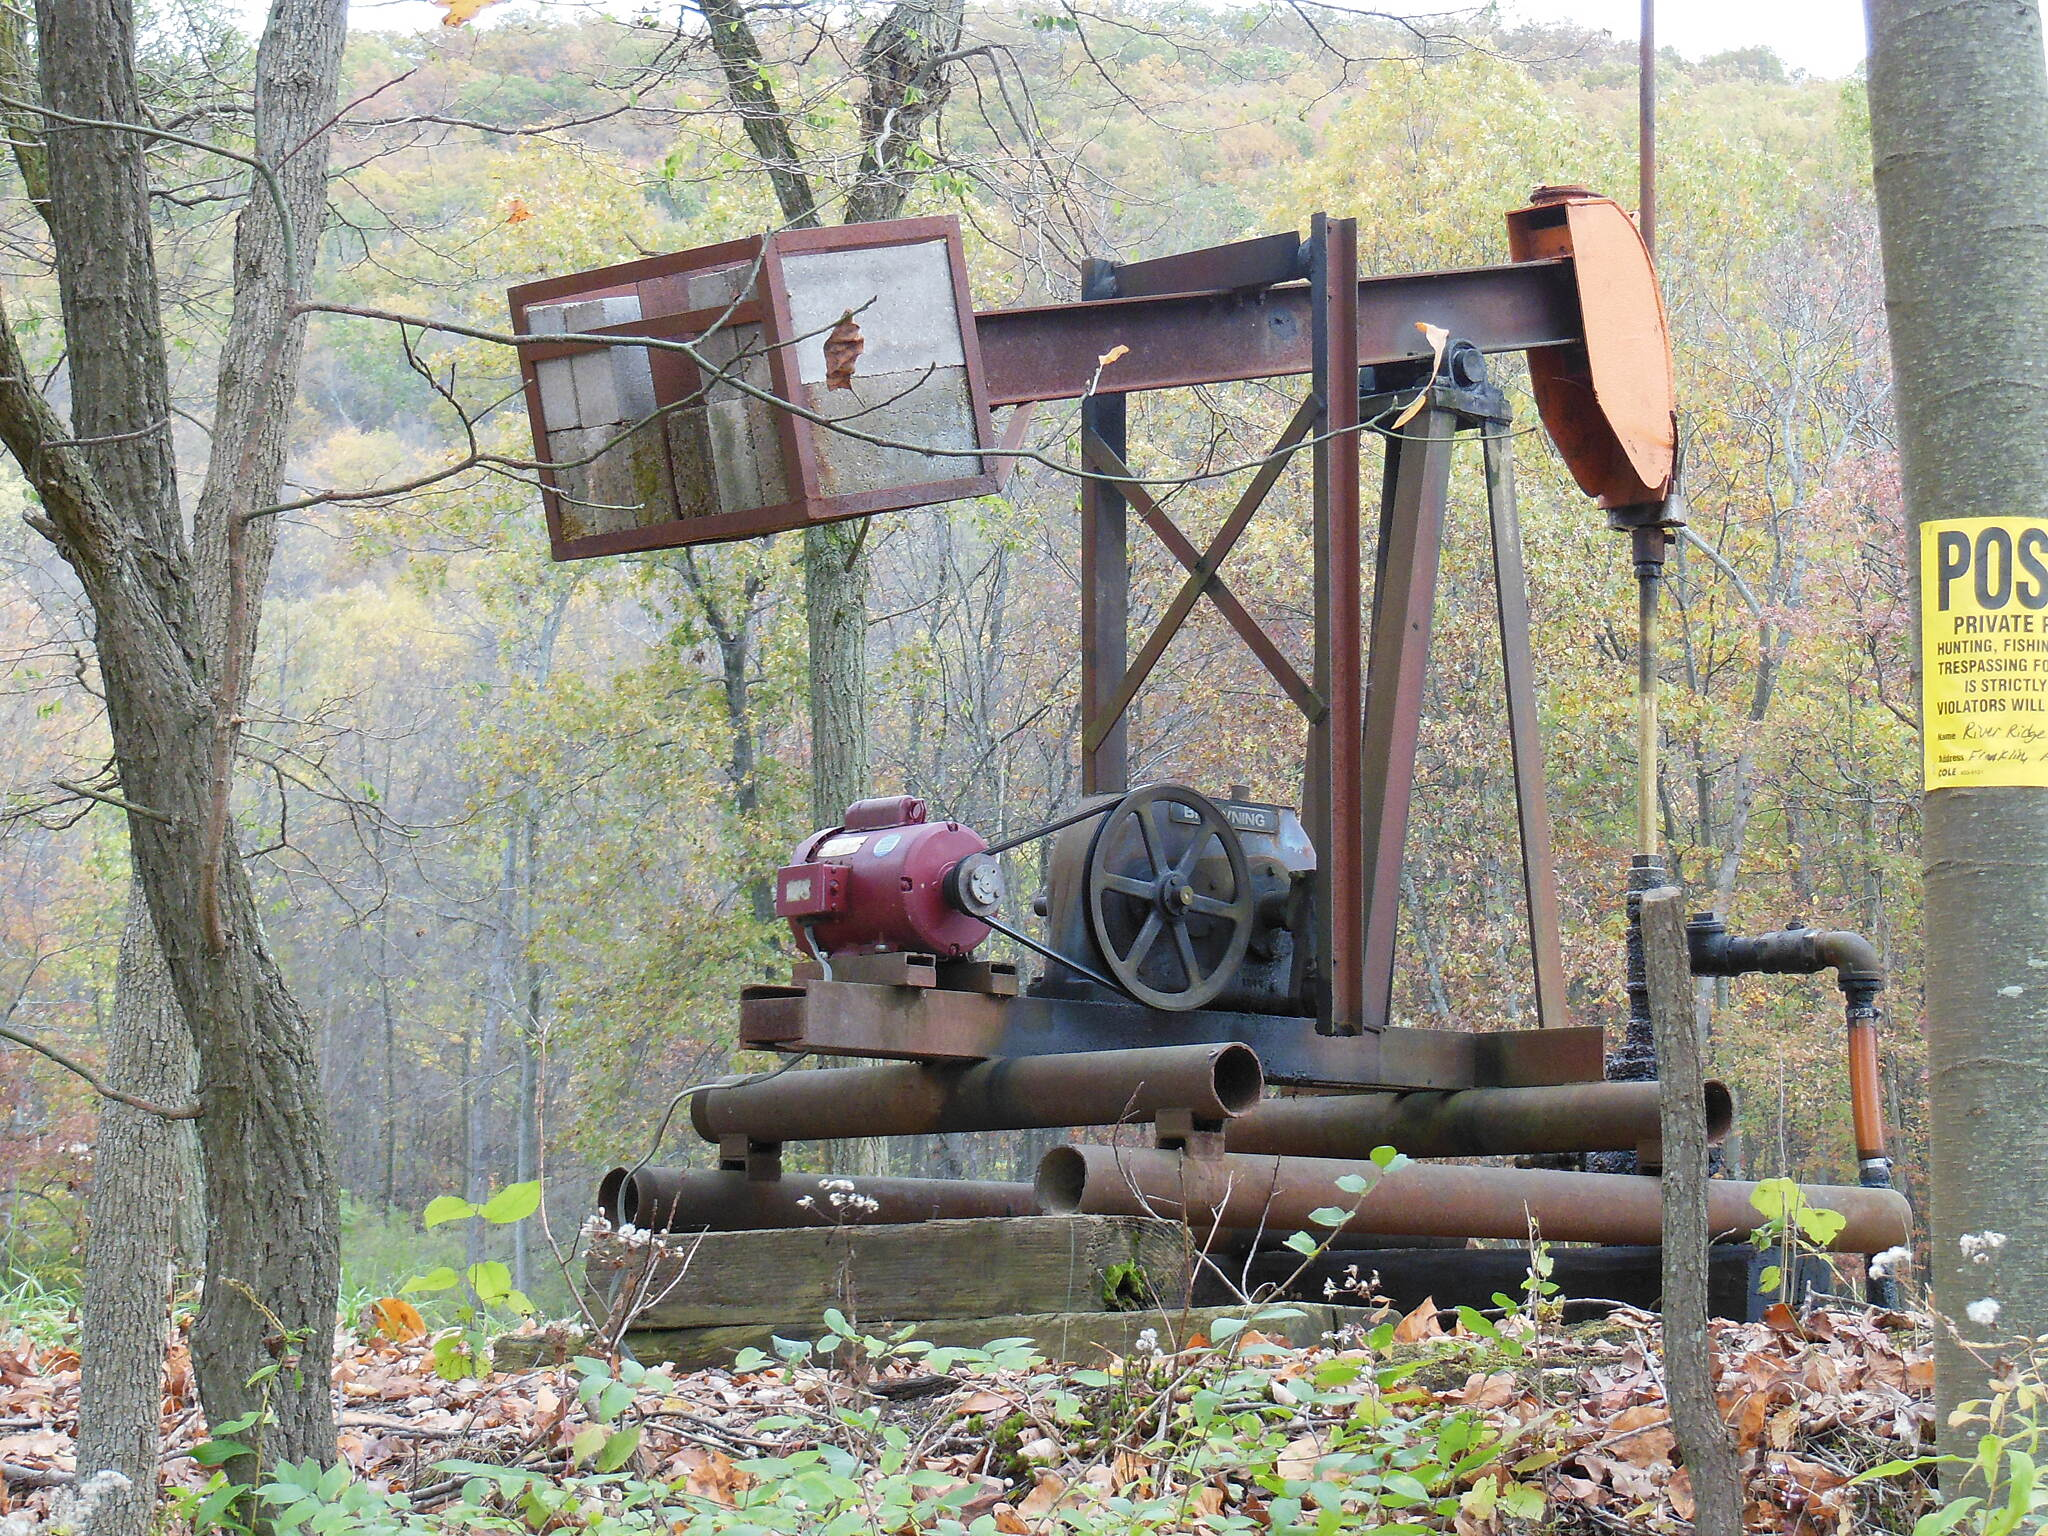 Allegheny River Trail Old Oil Well Getting up toward the north end of the trail you start to see more oil wells.